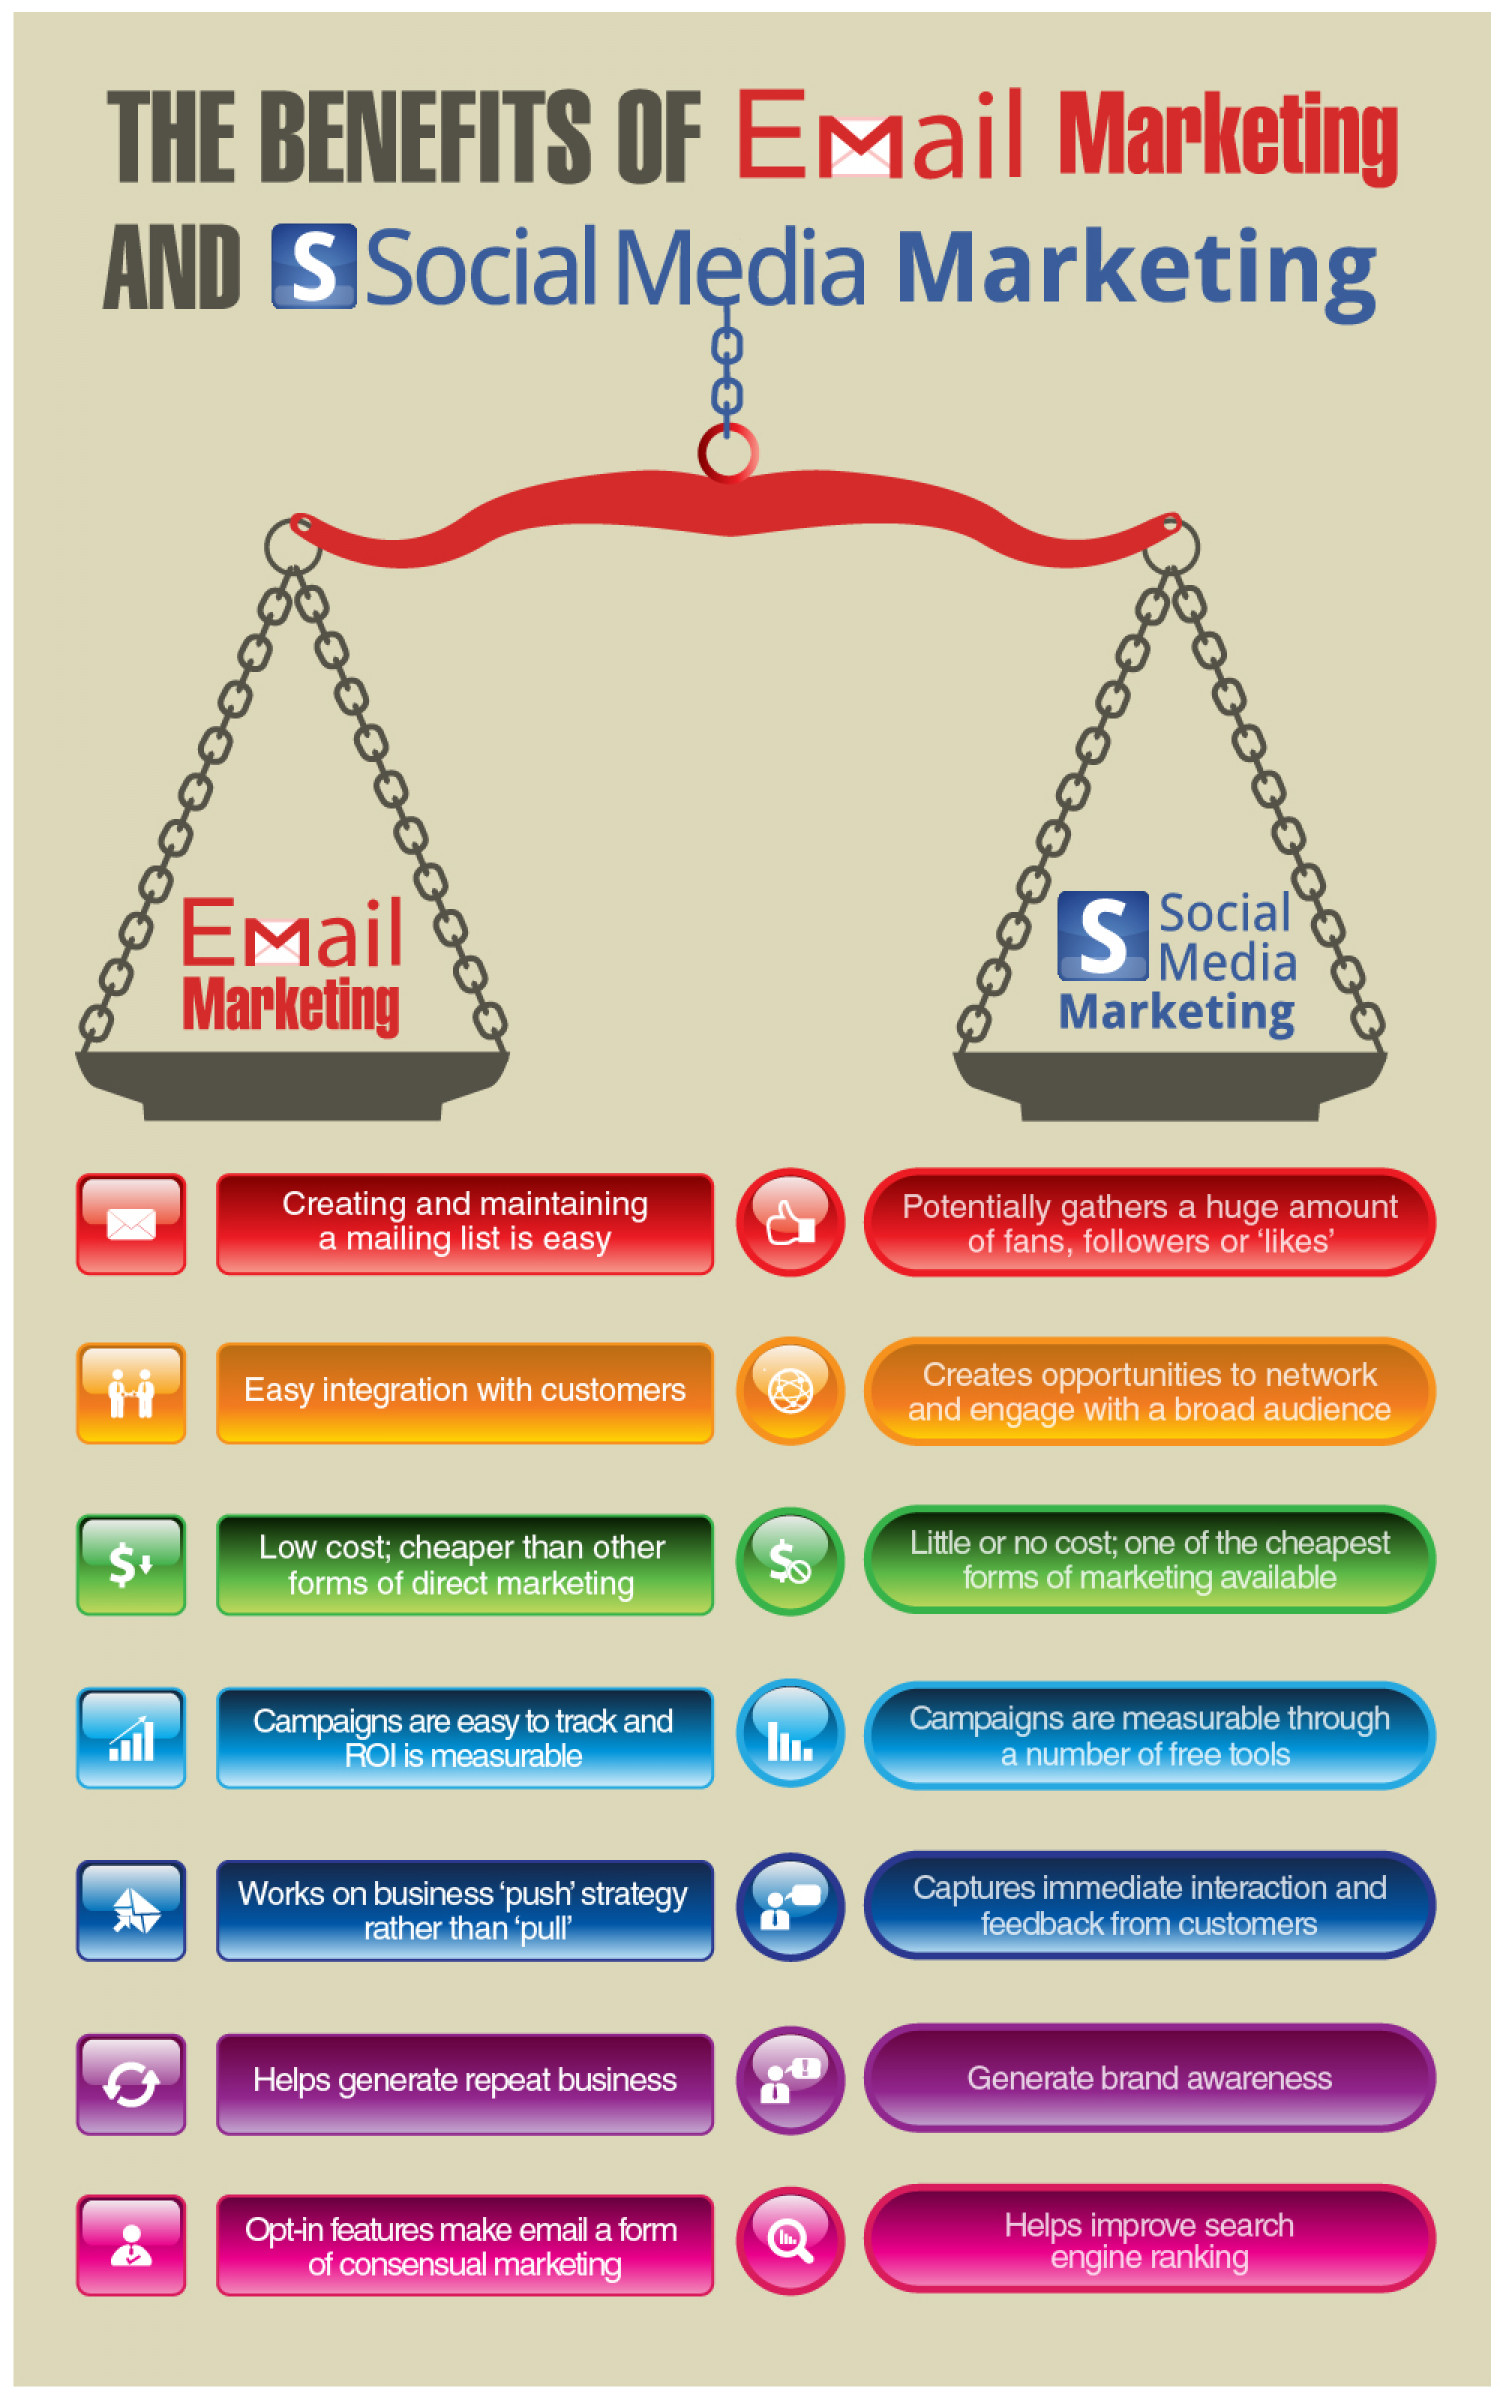 The Benefits of Email Marketing and Social Media Marketing Infographic